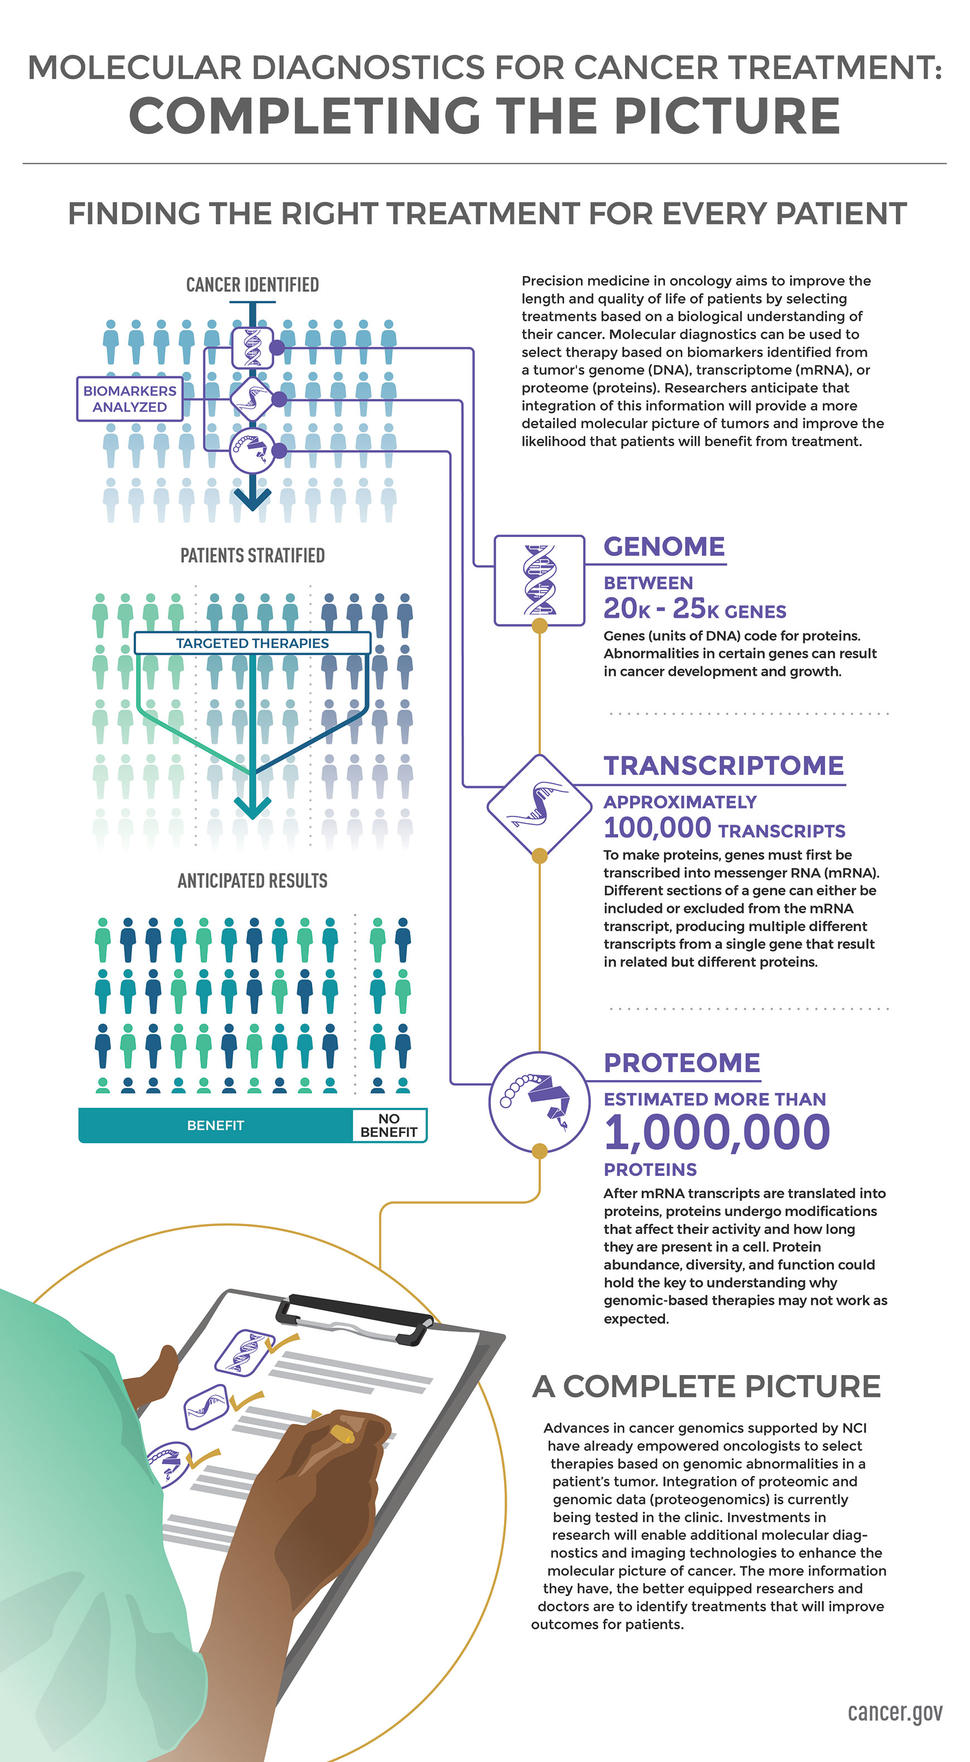 Molecular Diagnostics for Cancer Treatment: Completing the Picture Infographic